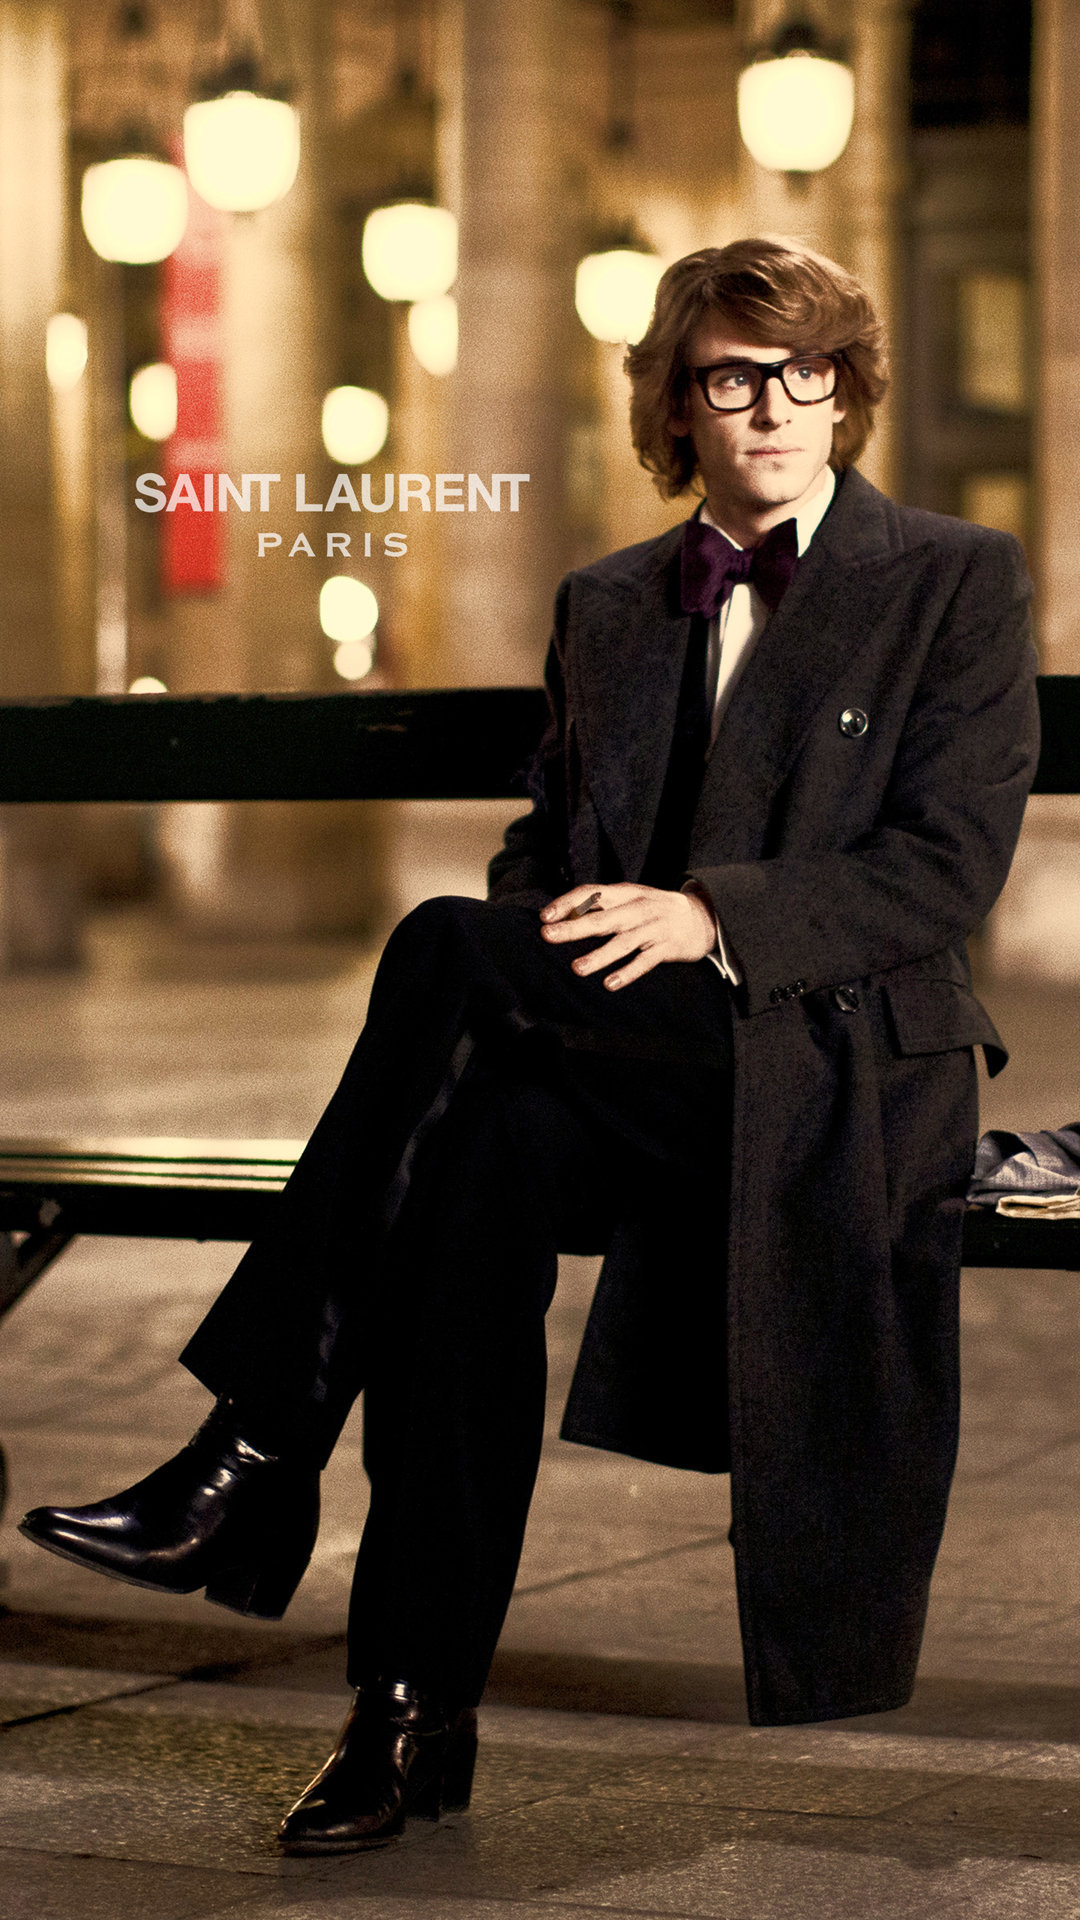 Saint Laurent Paris Brand Wallpaper